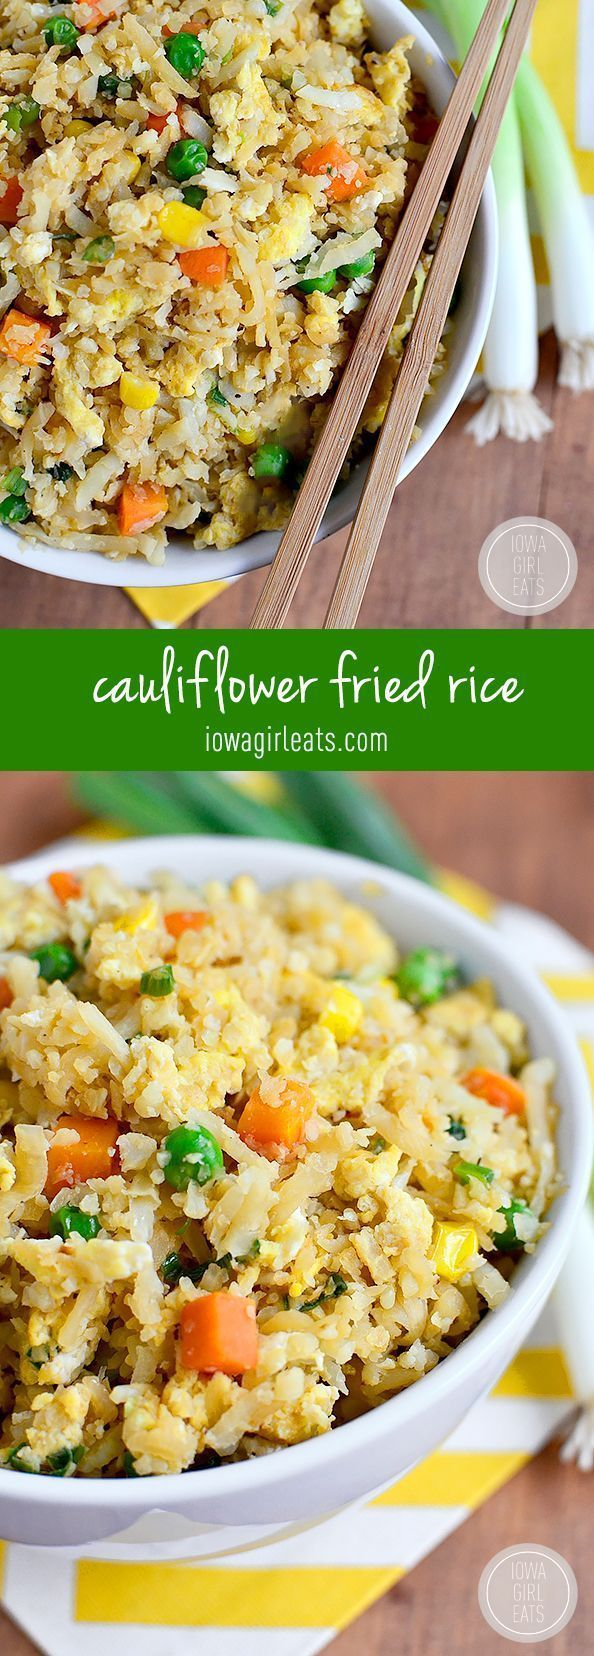 Cauliflower Fried Rice will trick your tastebuds in the best way possible. This 20 minute grain-free, low-carb dish will be a hit at your house! #lowcarb #glutenfree |